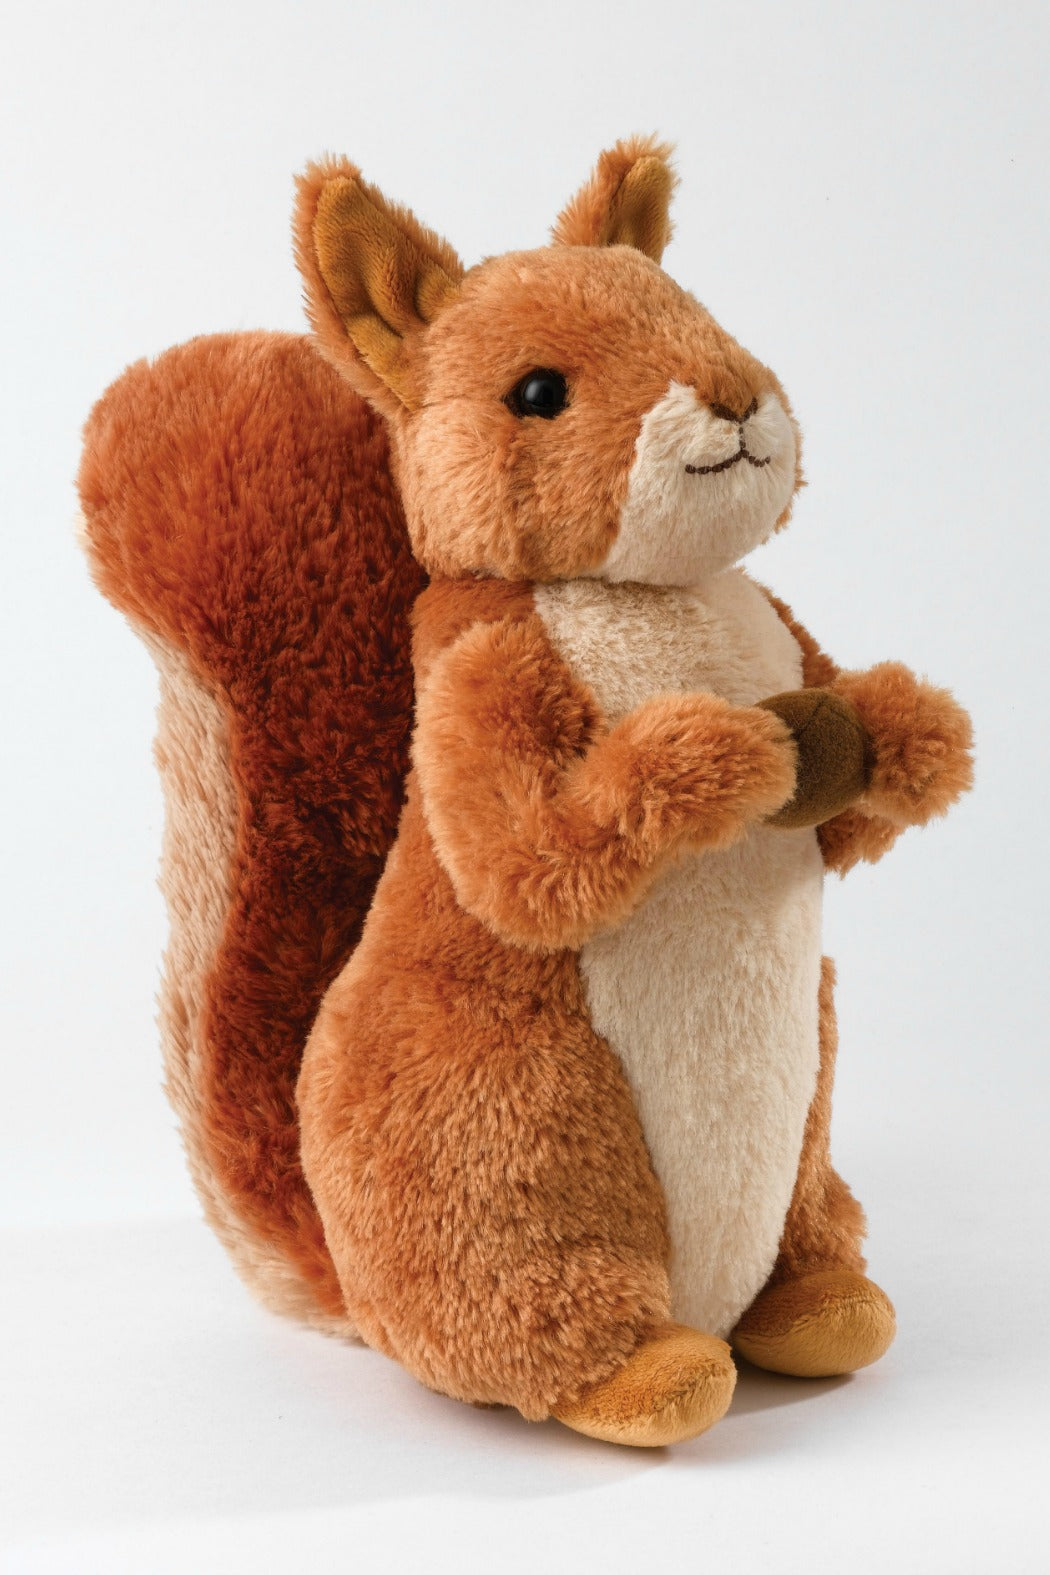 Squirrel Nutkin Soft Toy - Peter Rabbit - Gund